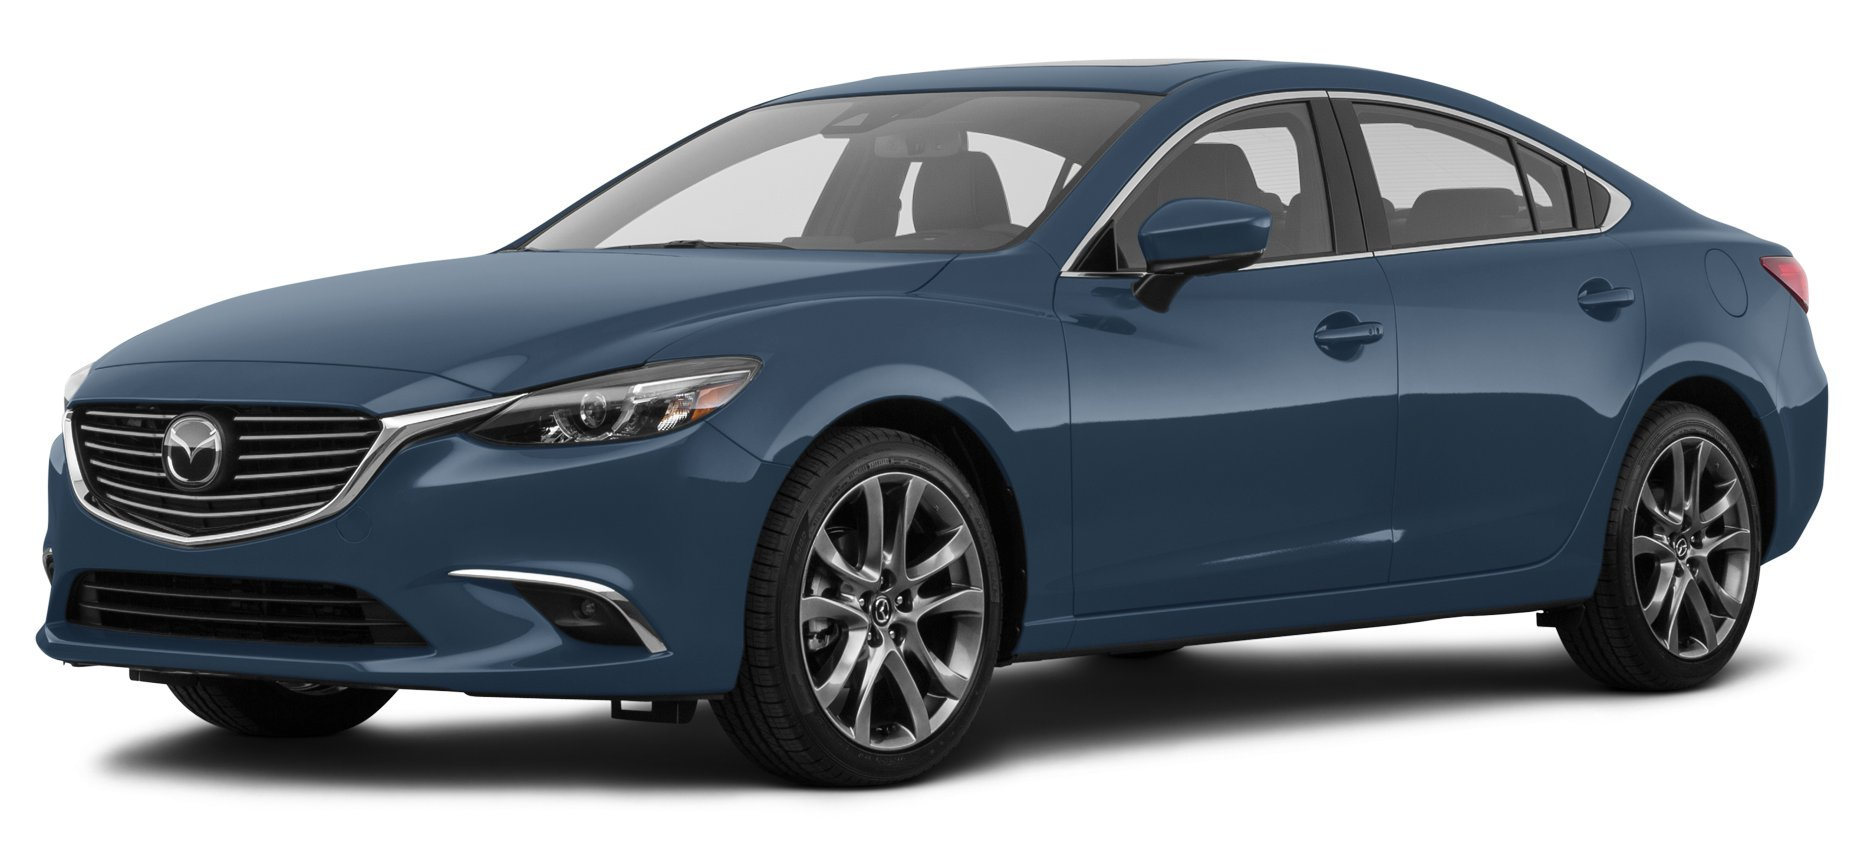 Mazda Mazda6: Steps for Determining the Correct Load Limit